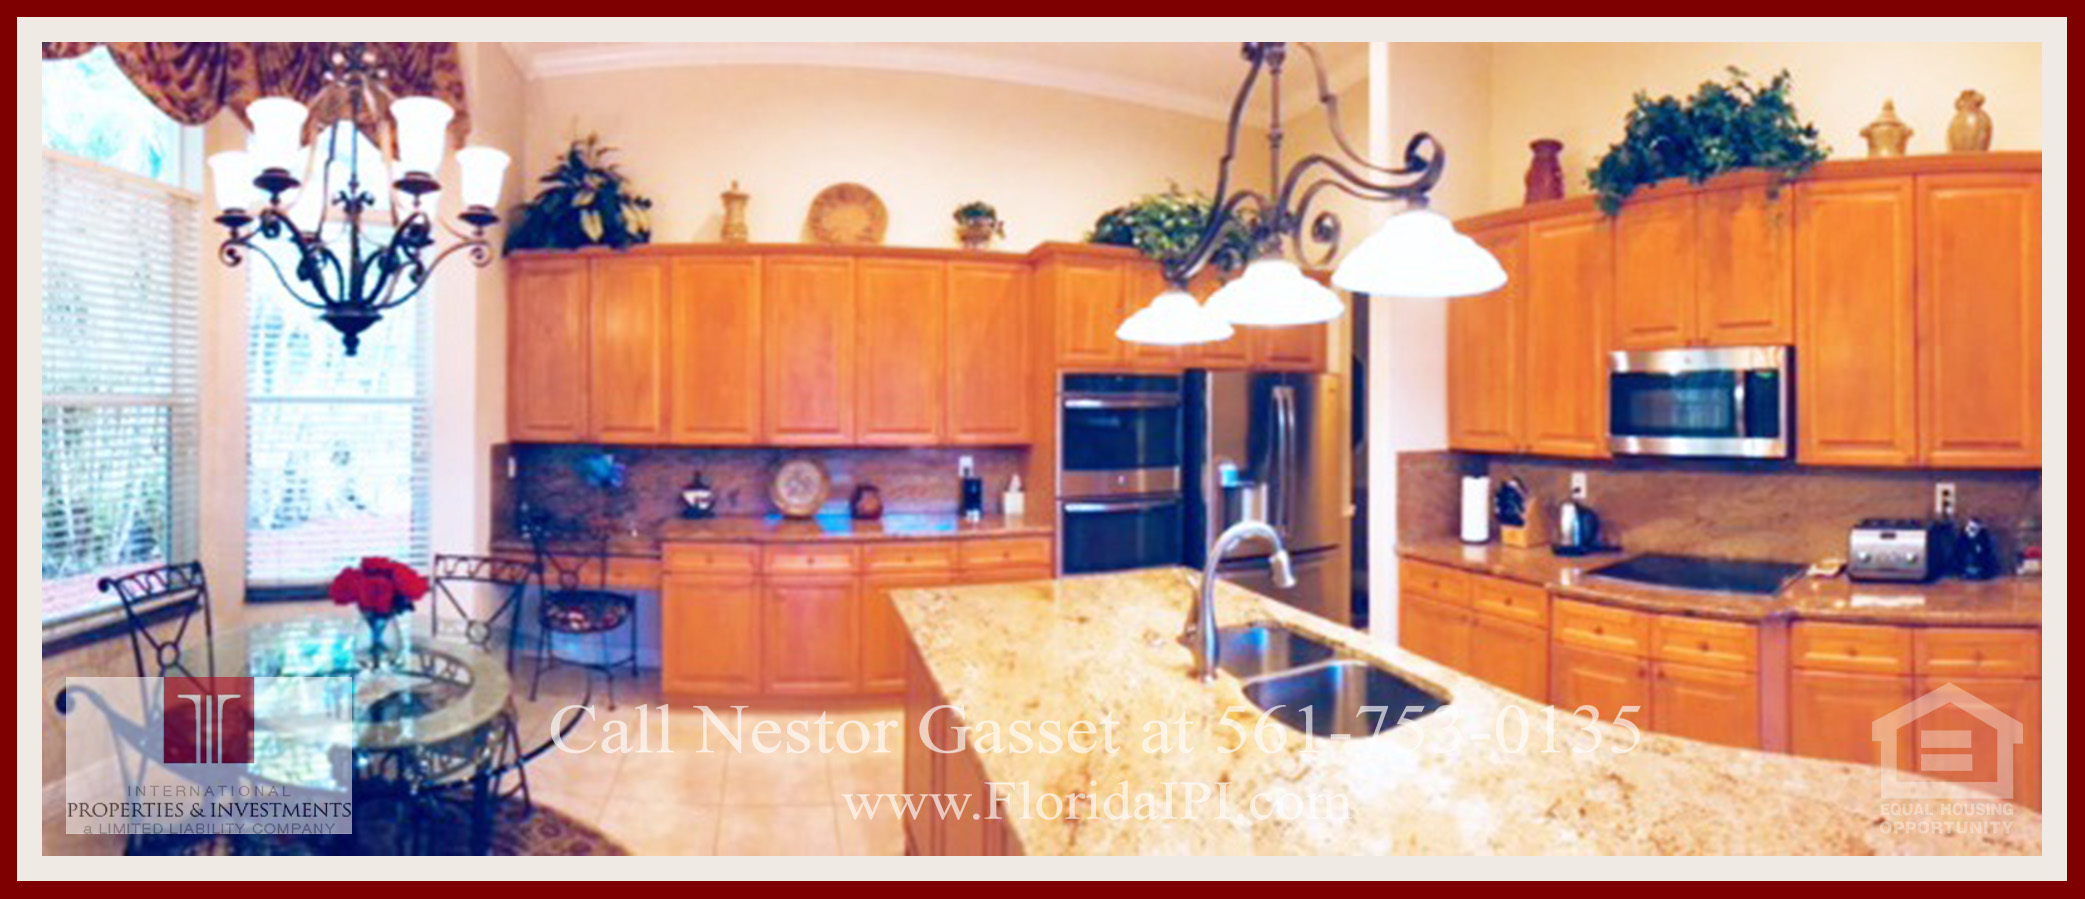 West Palm Beach Fl Golf Course Community Estate Home For Sale   The Kitchen  Of This